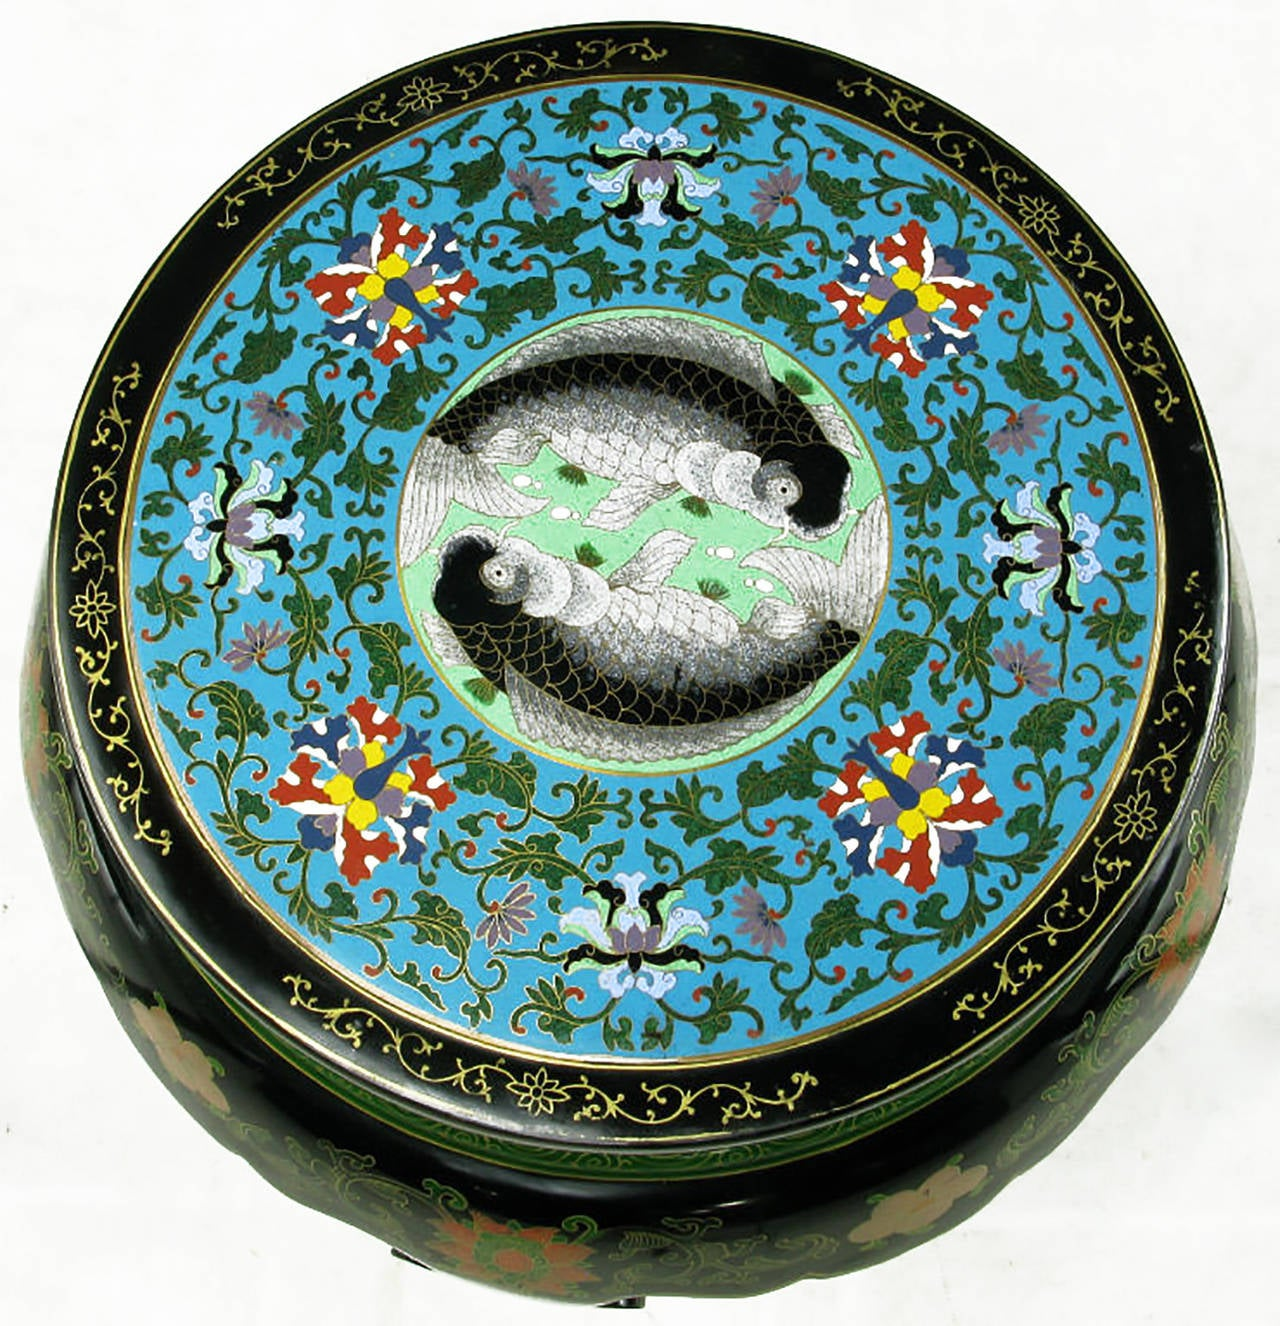 Elegant polychrome cloisonné and black lacquered side table. The petite chinoiserie table has five cabriole legs as oppose to the usual four, and they are surmounted on a carved and hand-painted round base. The enameled cloisonné top is finished in